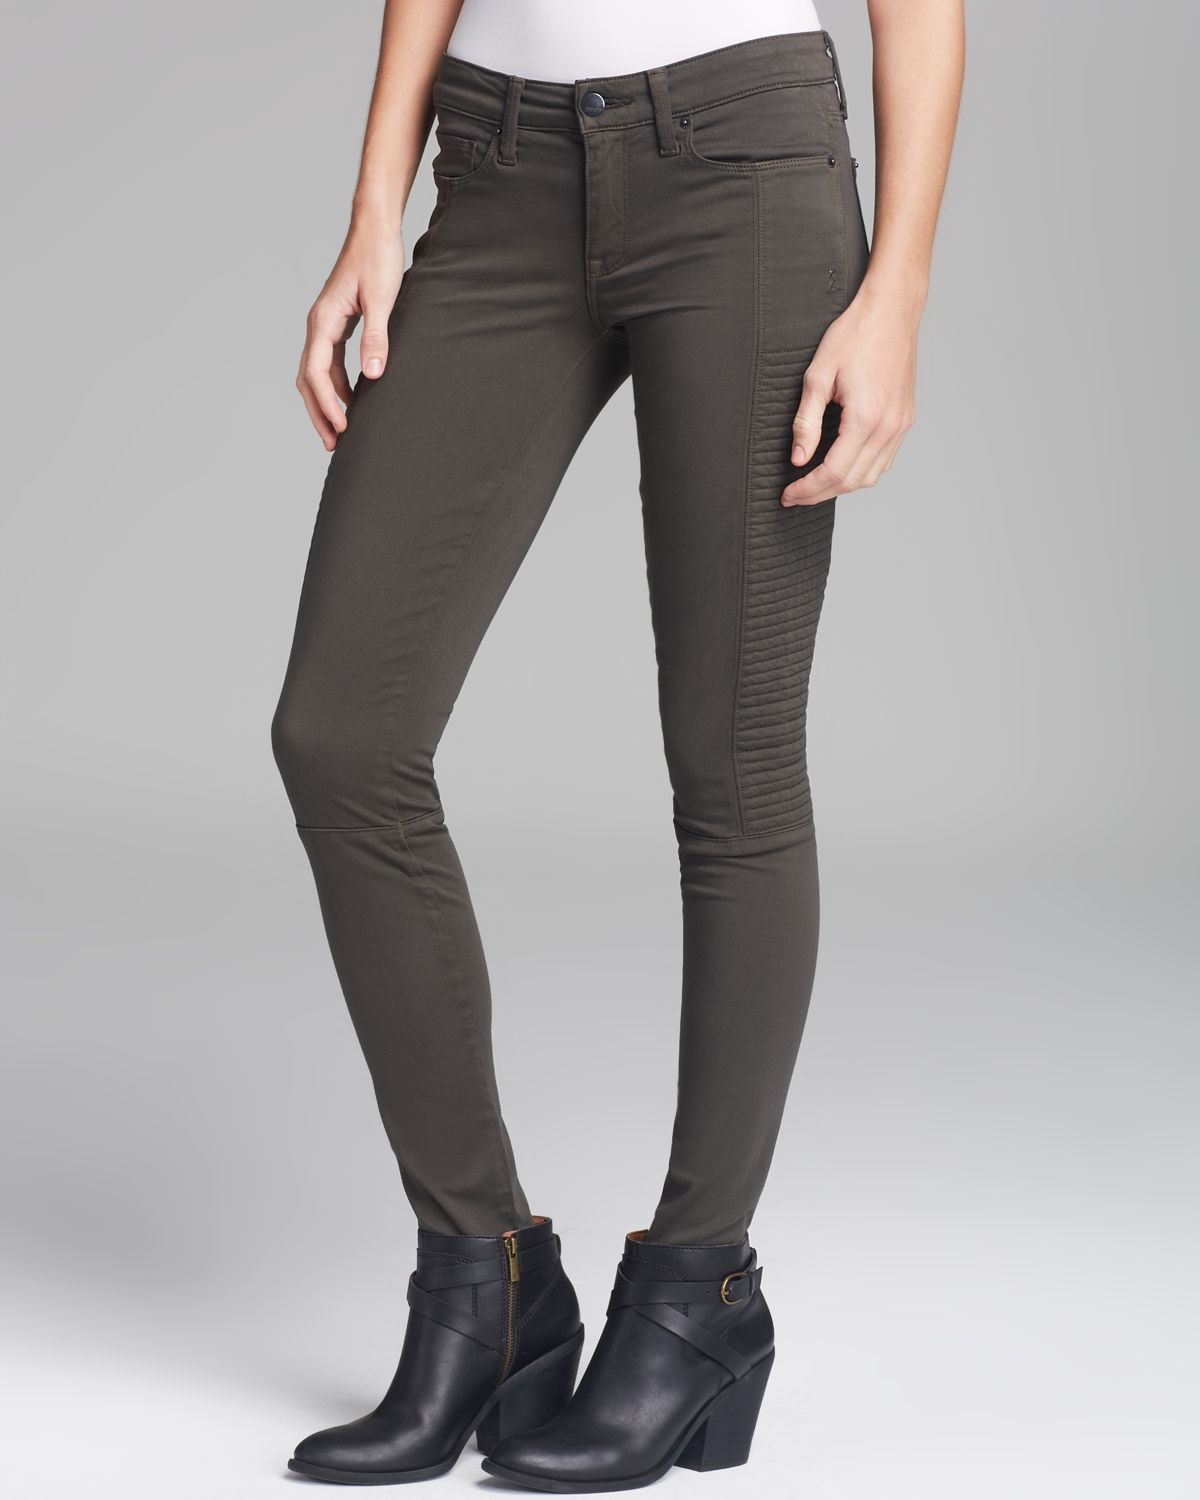 Find great deals on eBay for army green skinny jeans. Shop with confidence.